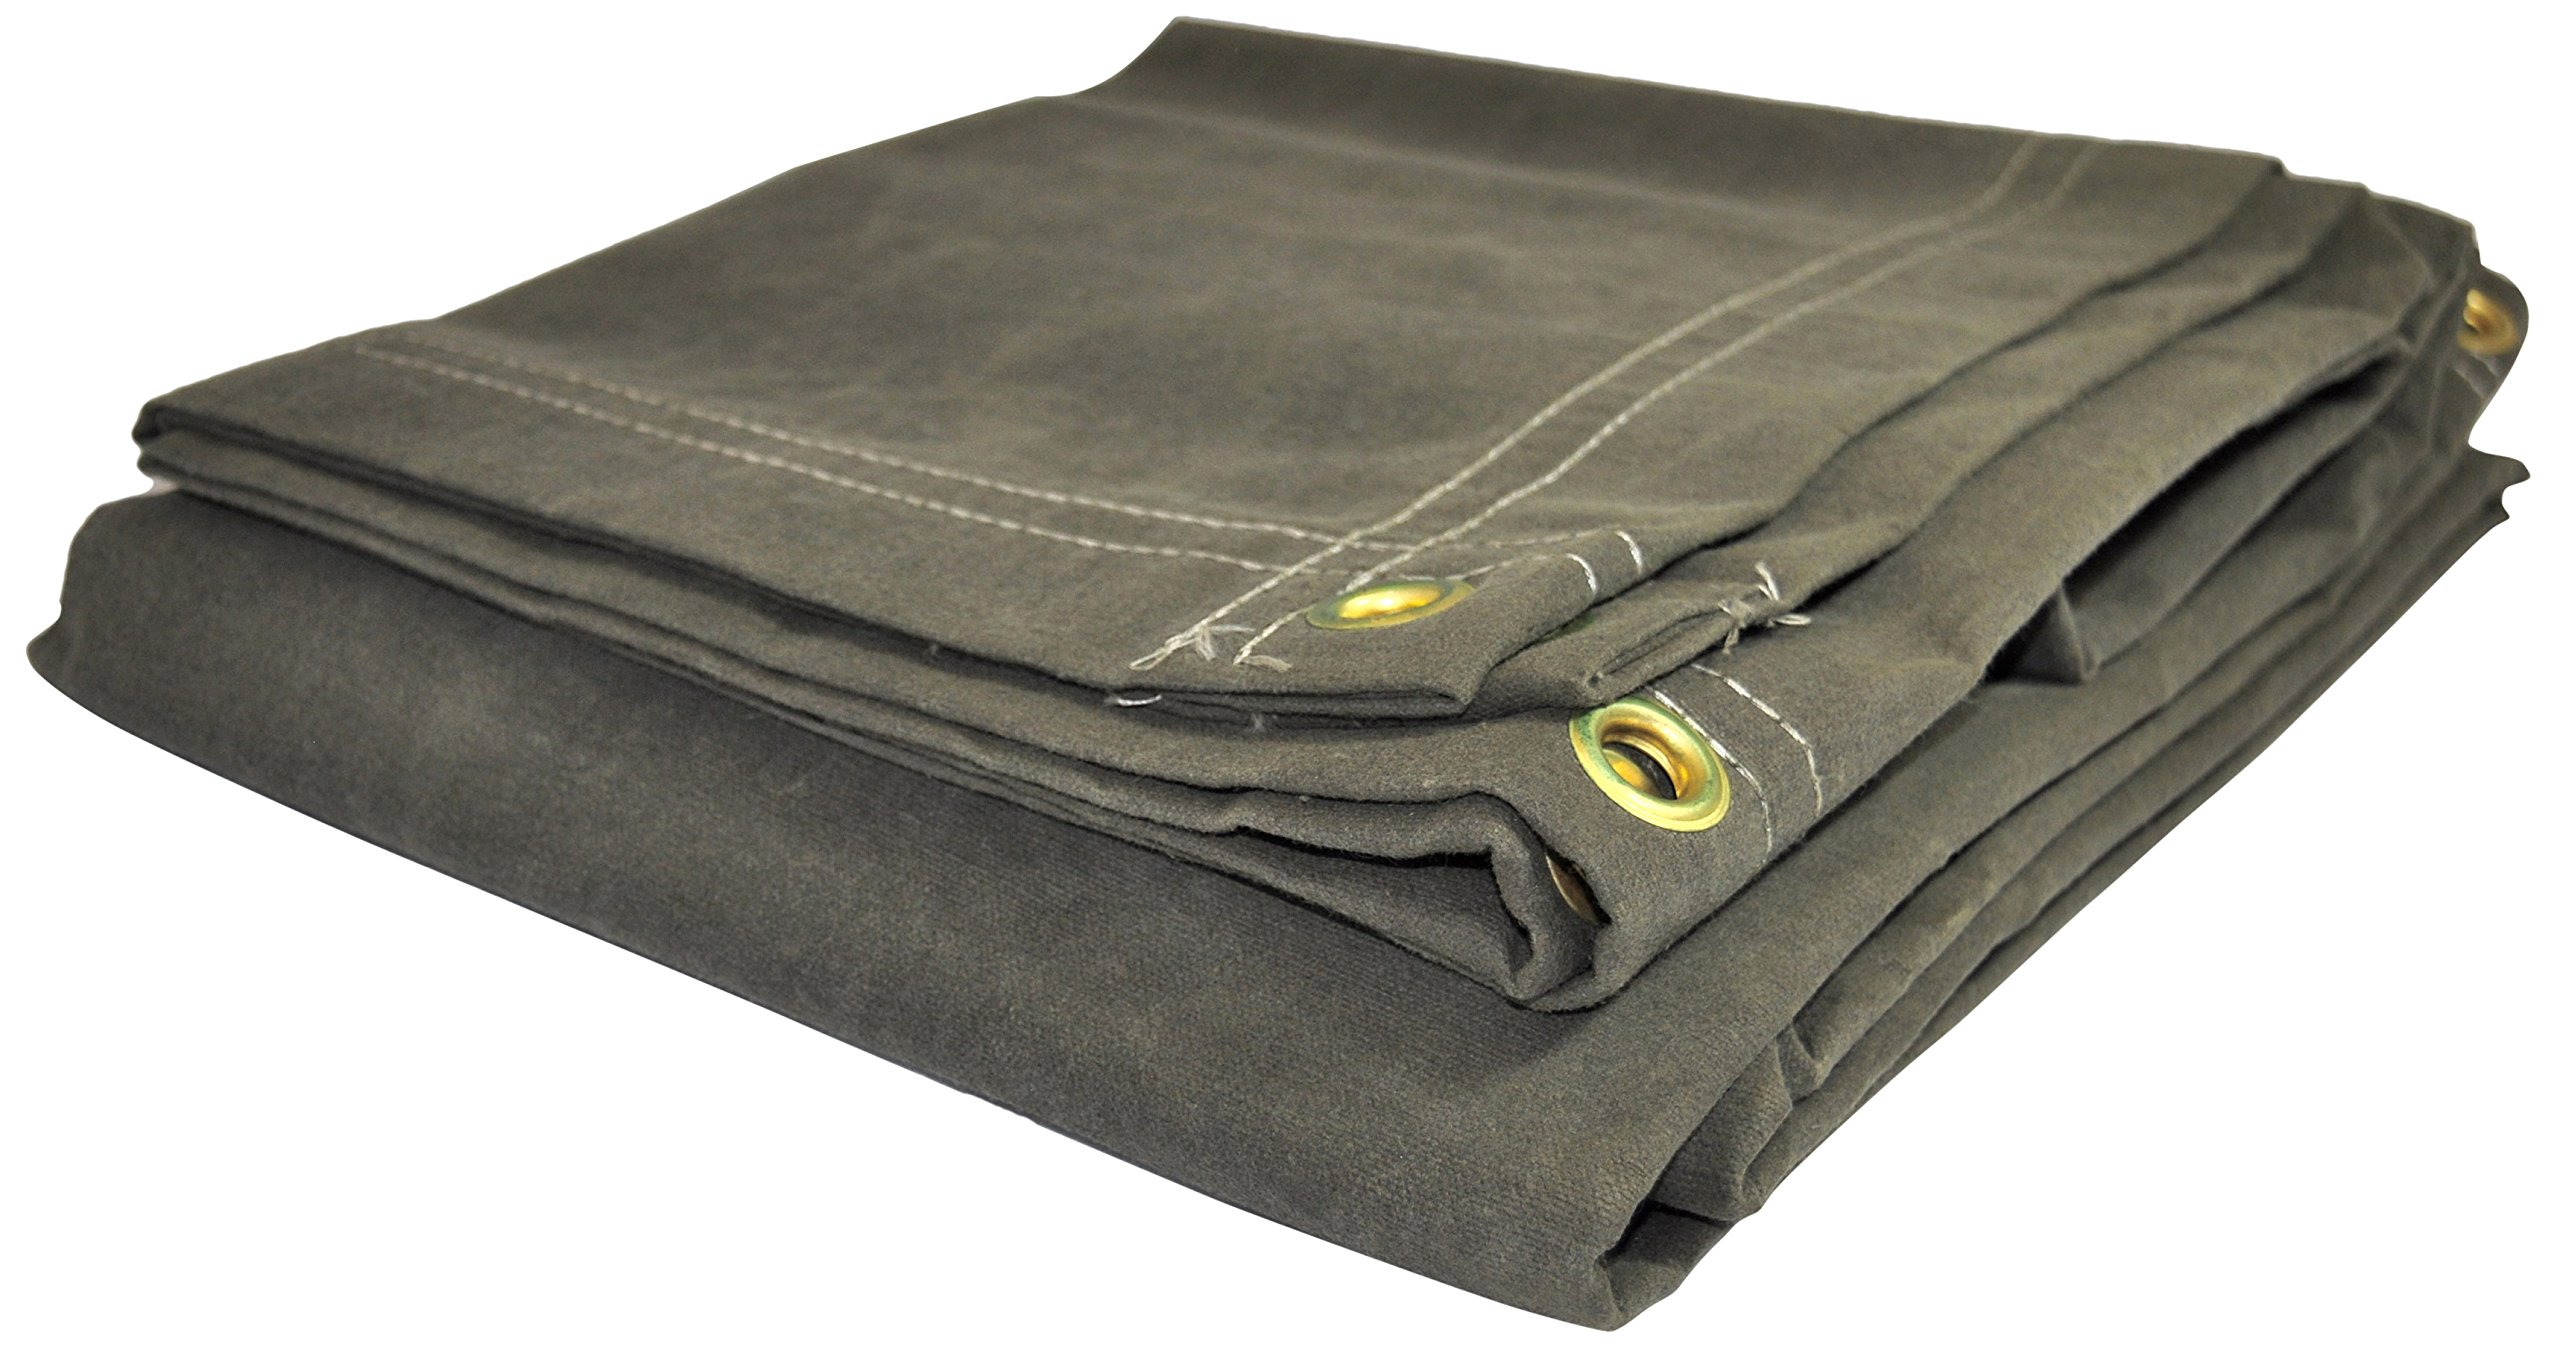 Dry Top 61012 Canvas Tarp, 10' x 12', Olive by DRY TOP